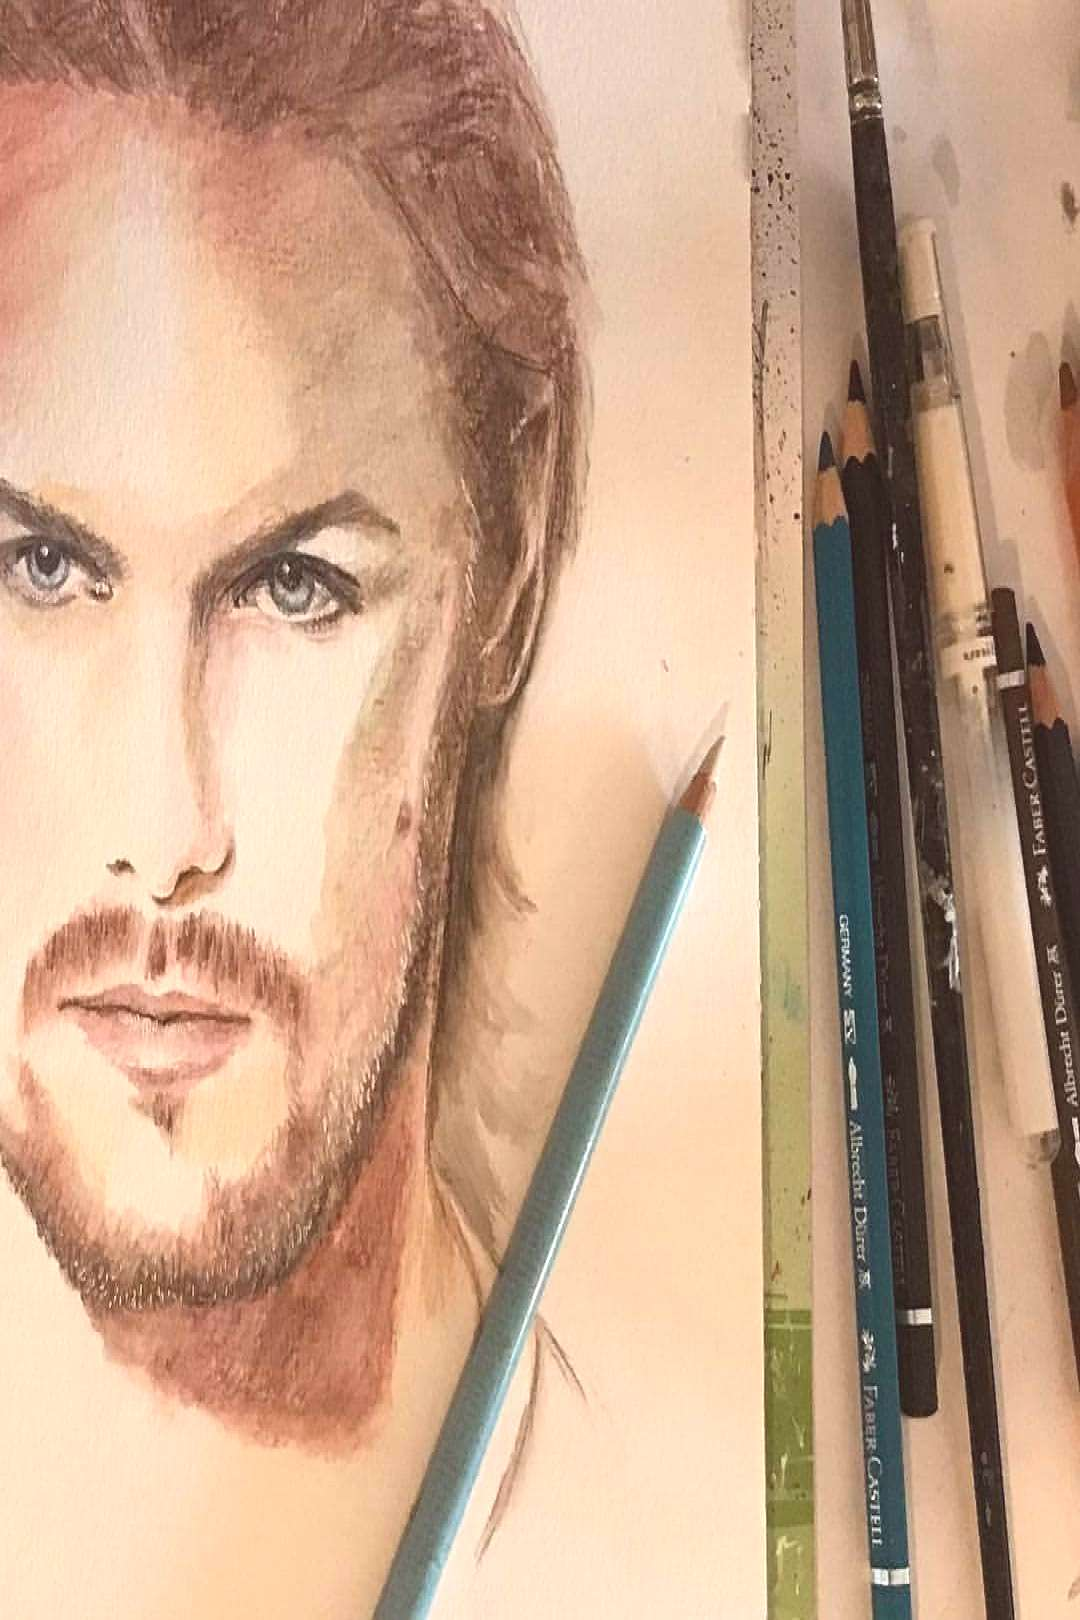 #Repost * * * * * * Started to draw those blue eyes YouTube video